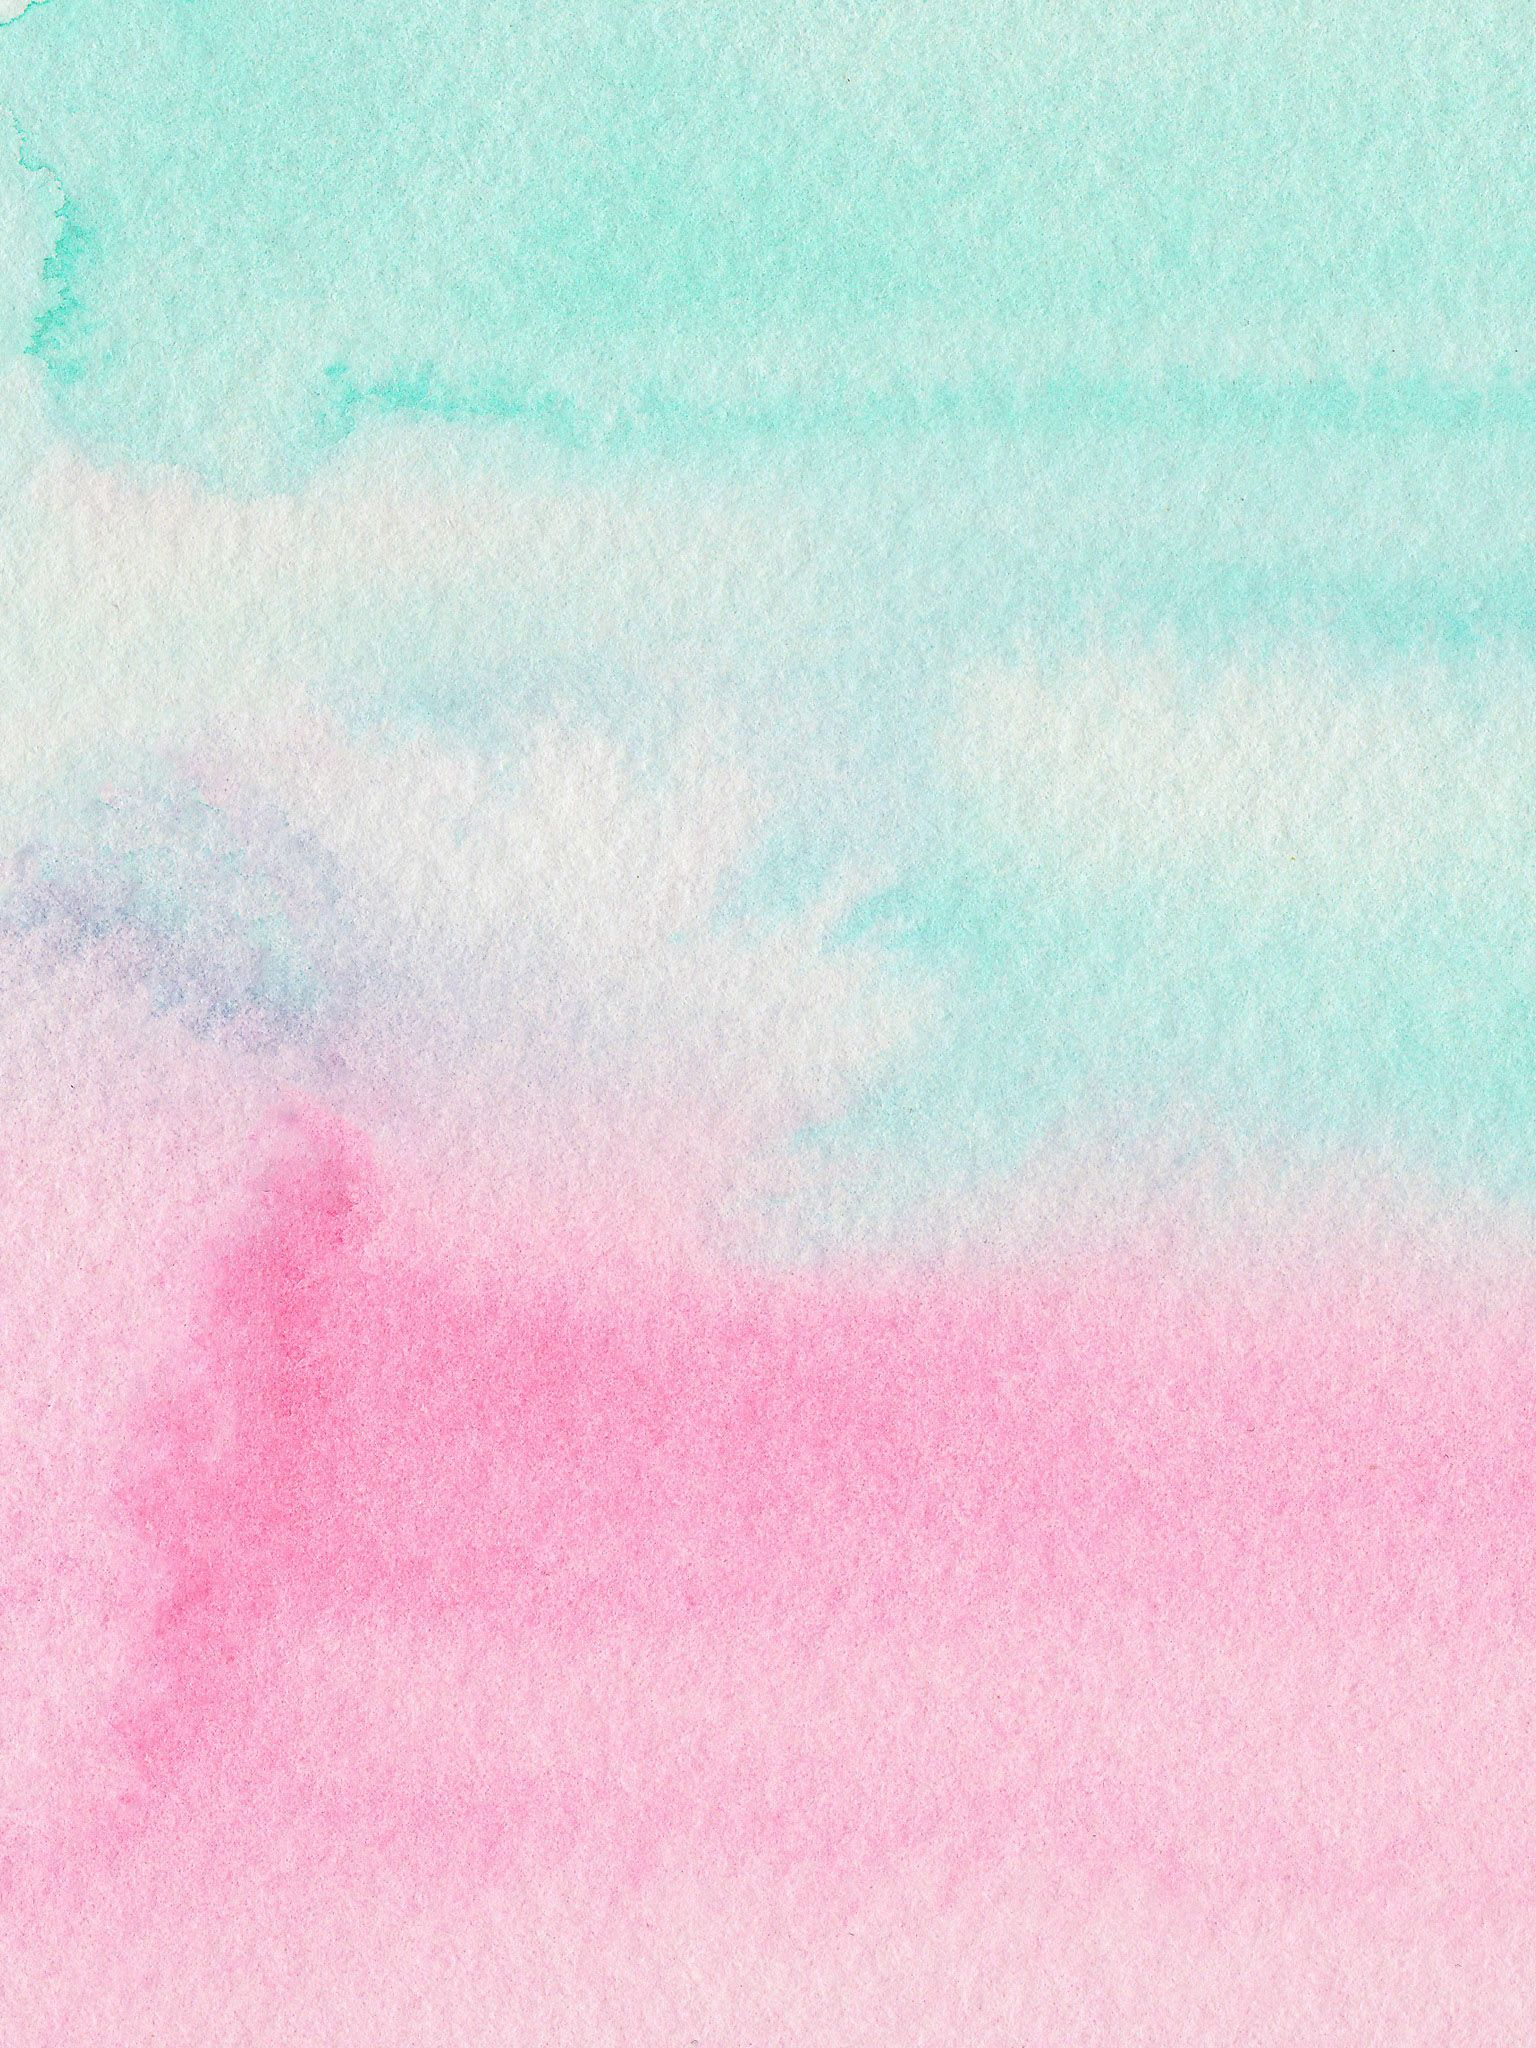 Ombre desktop wallpaper downloads something peach s t u Ombre aqua wallpaper